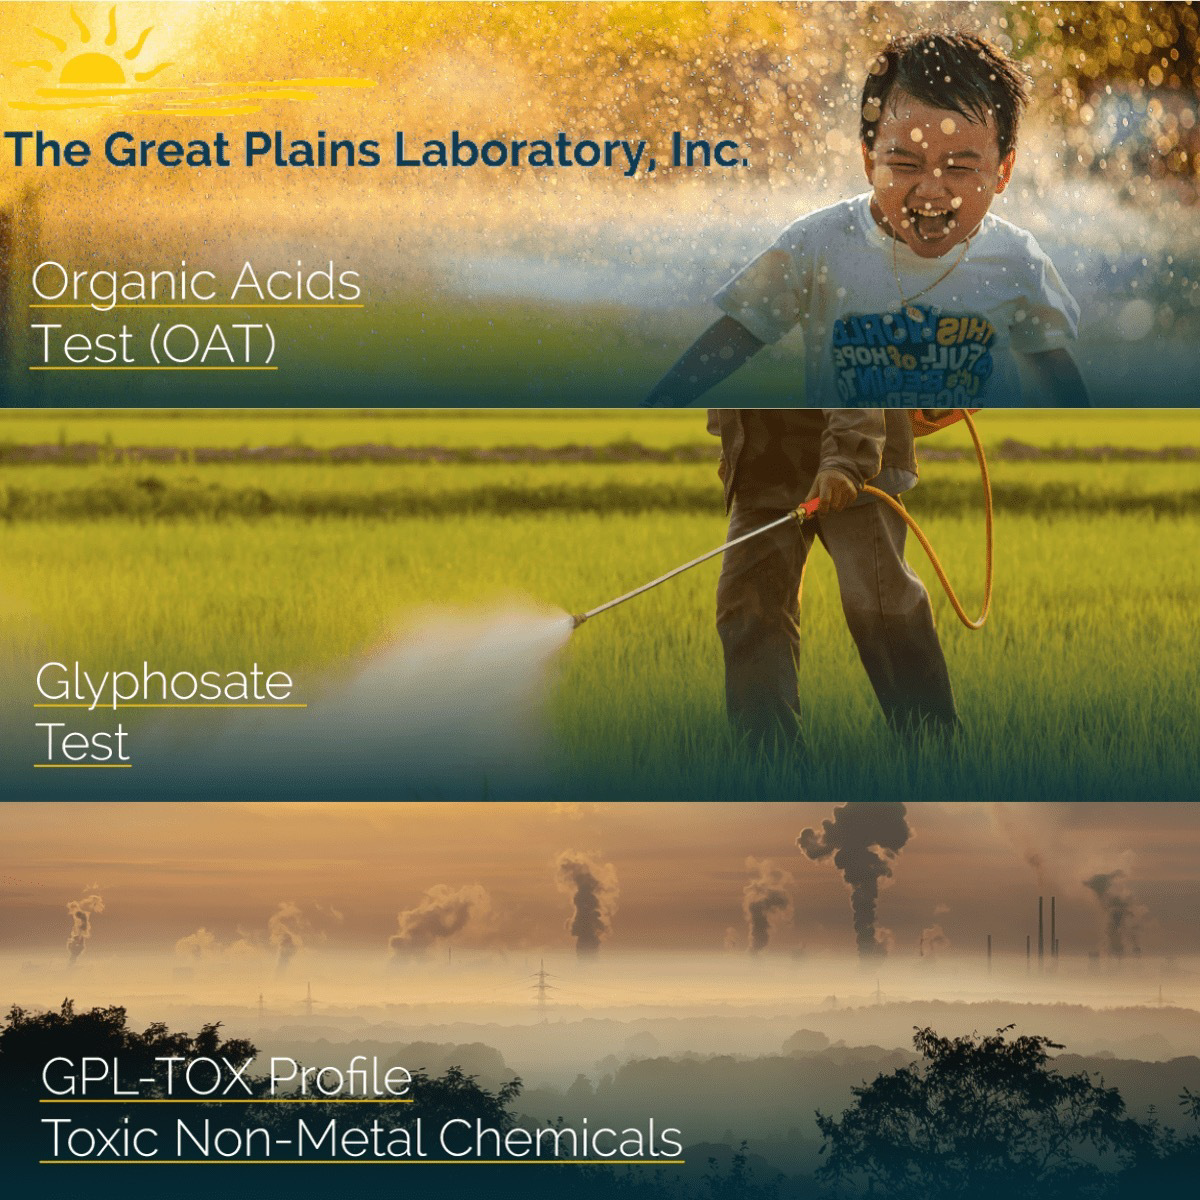 ENVIROtox Complete Panel (GPL-TOX + OAT + Glyphosate) + MycoTOX Profile (Mold Exposure) 4 tests in one USA only